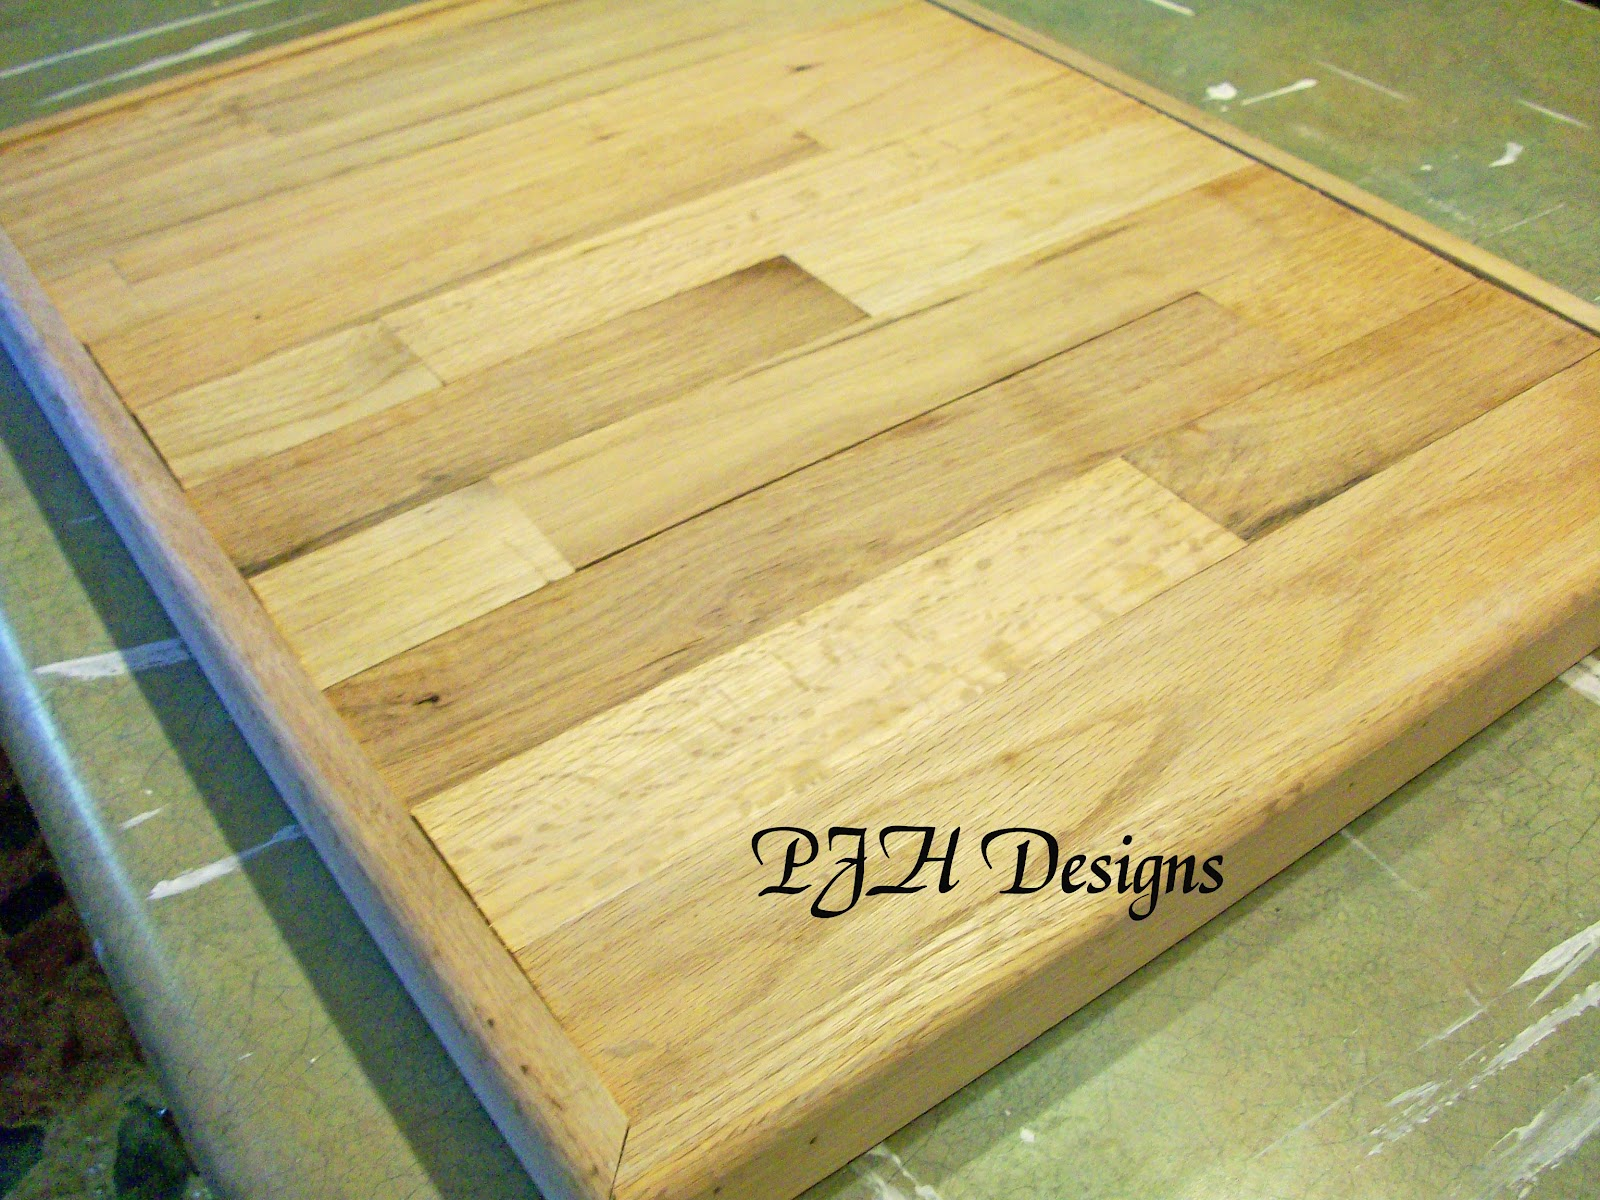 Butcher Block Countertops Price : ... : Kitchen Remodel: Butcher Block Counter Tops @ 1/10th The Cost